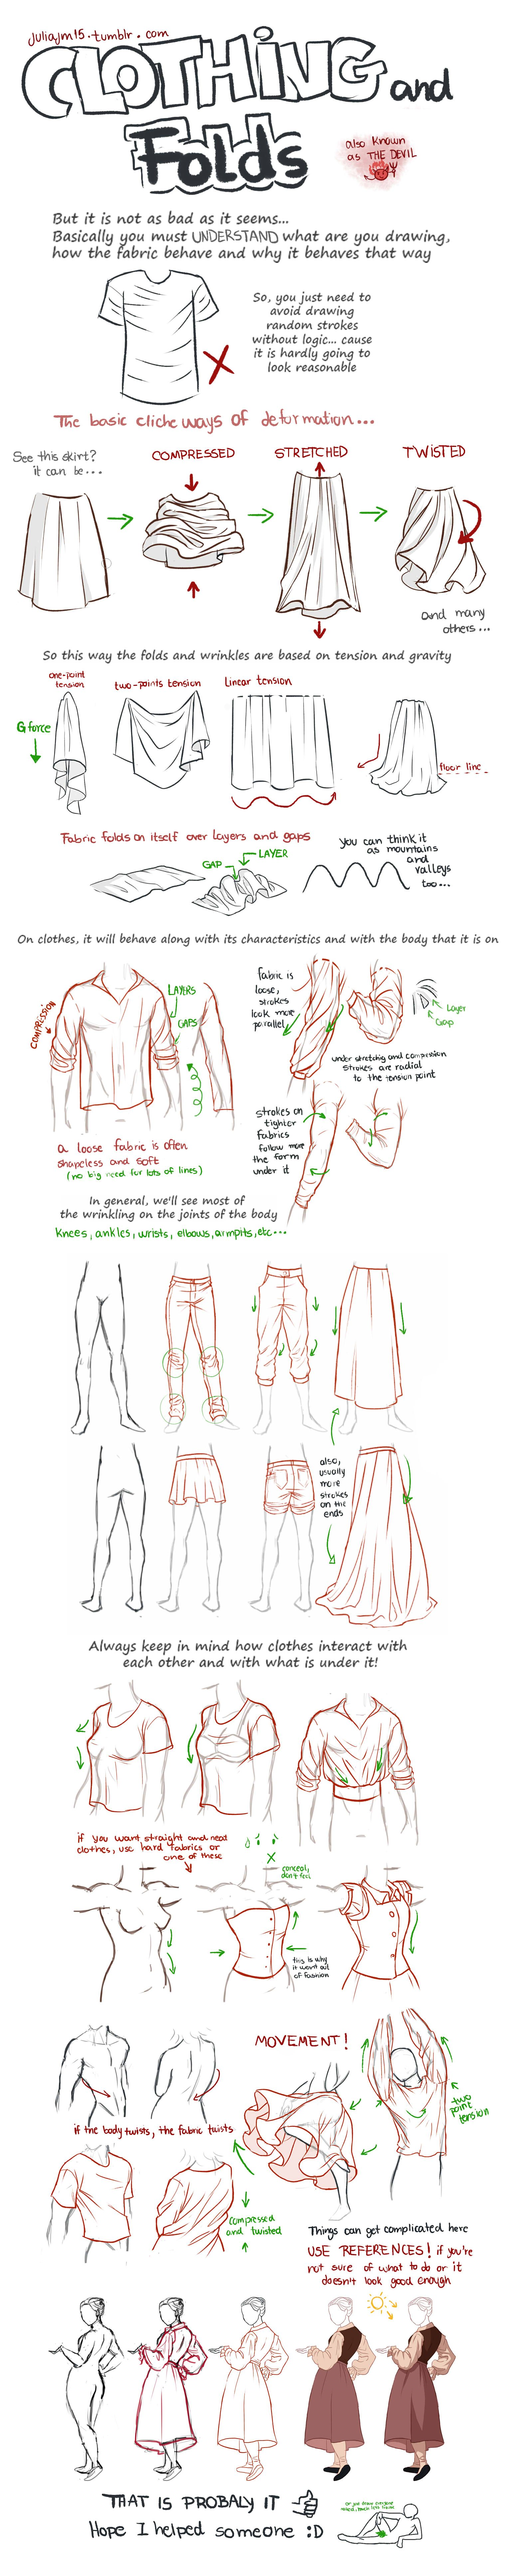 Clothing and folds tutorial by juliajm15 drawing anime clothes manga clothes drawings of clothes